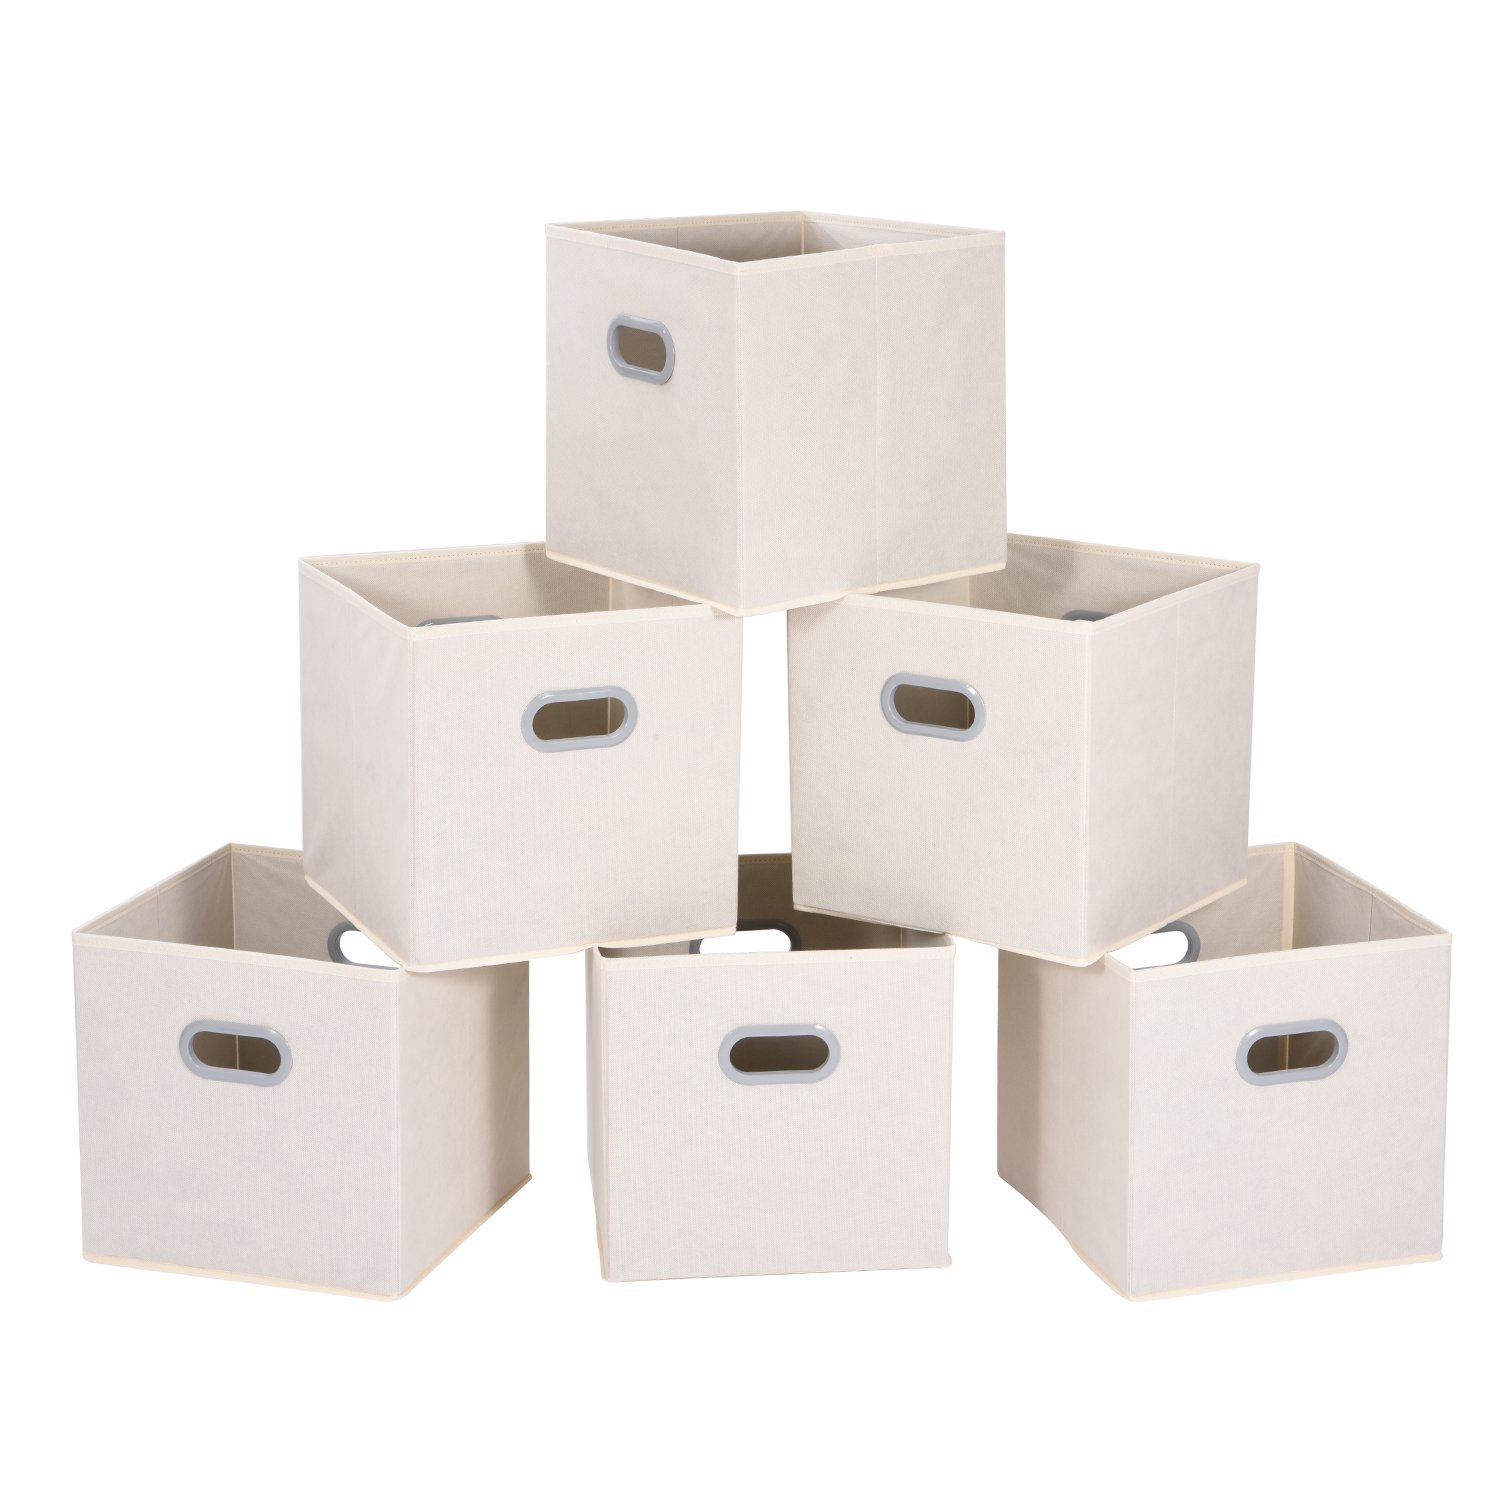 amazoncom maidmax cloth storage bins cubes baskets containers with dualplastic handles for home closet bedroom drawers organizers flodablebeige . amazoncom maidmax cloth storage bins cubes baskets containers